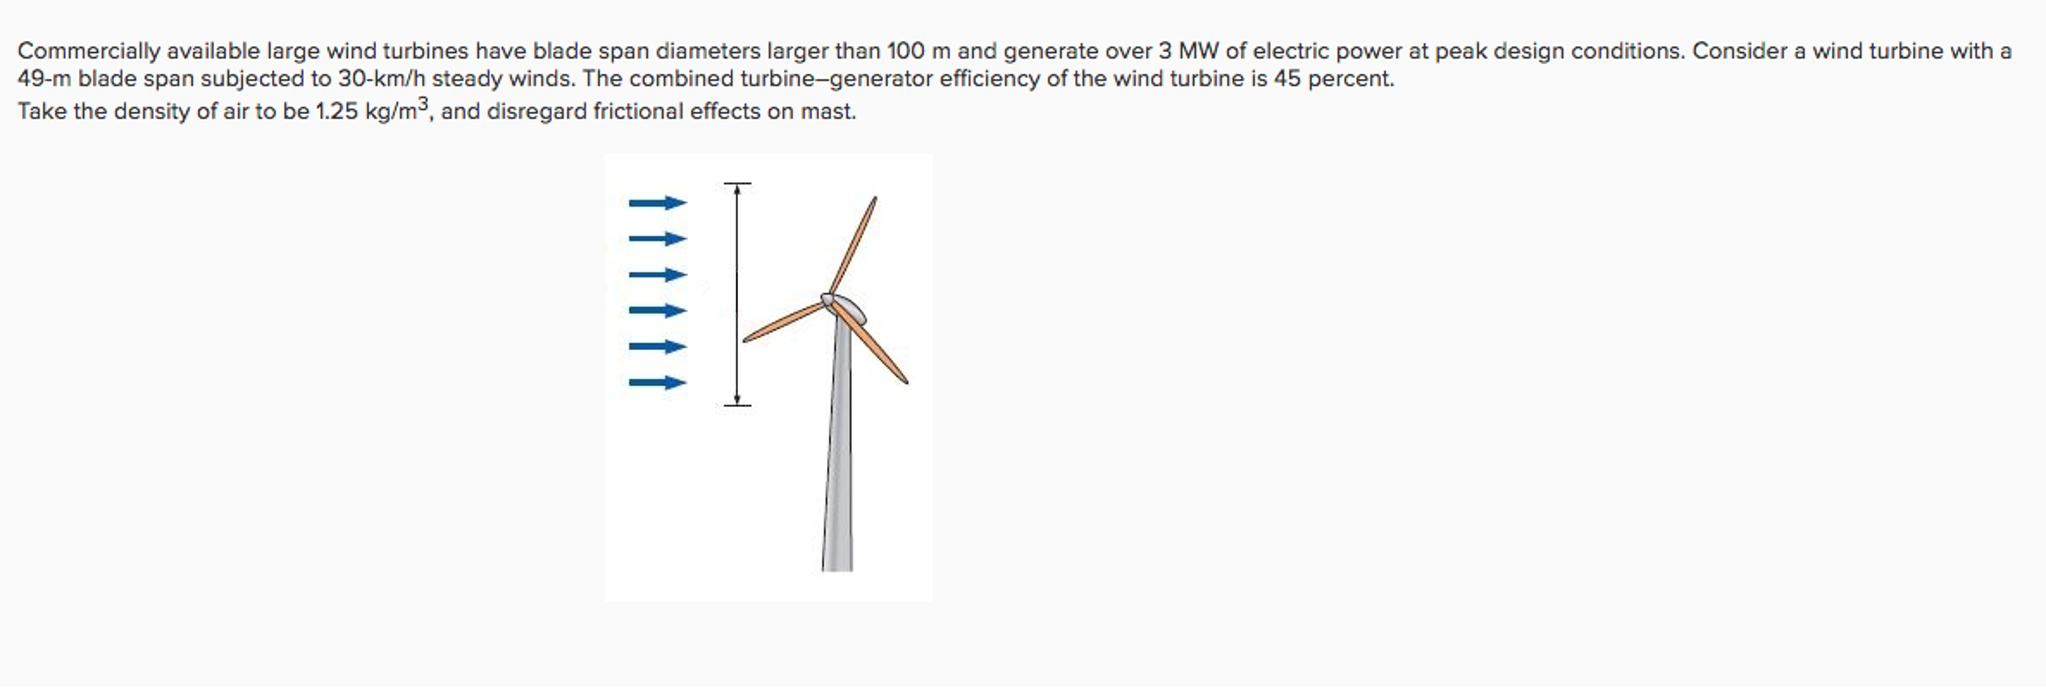 Commercially Available Large Wind Turbines Have Bl Diagram Also Power Generator Diagrams On Turbine